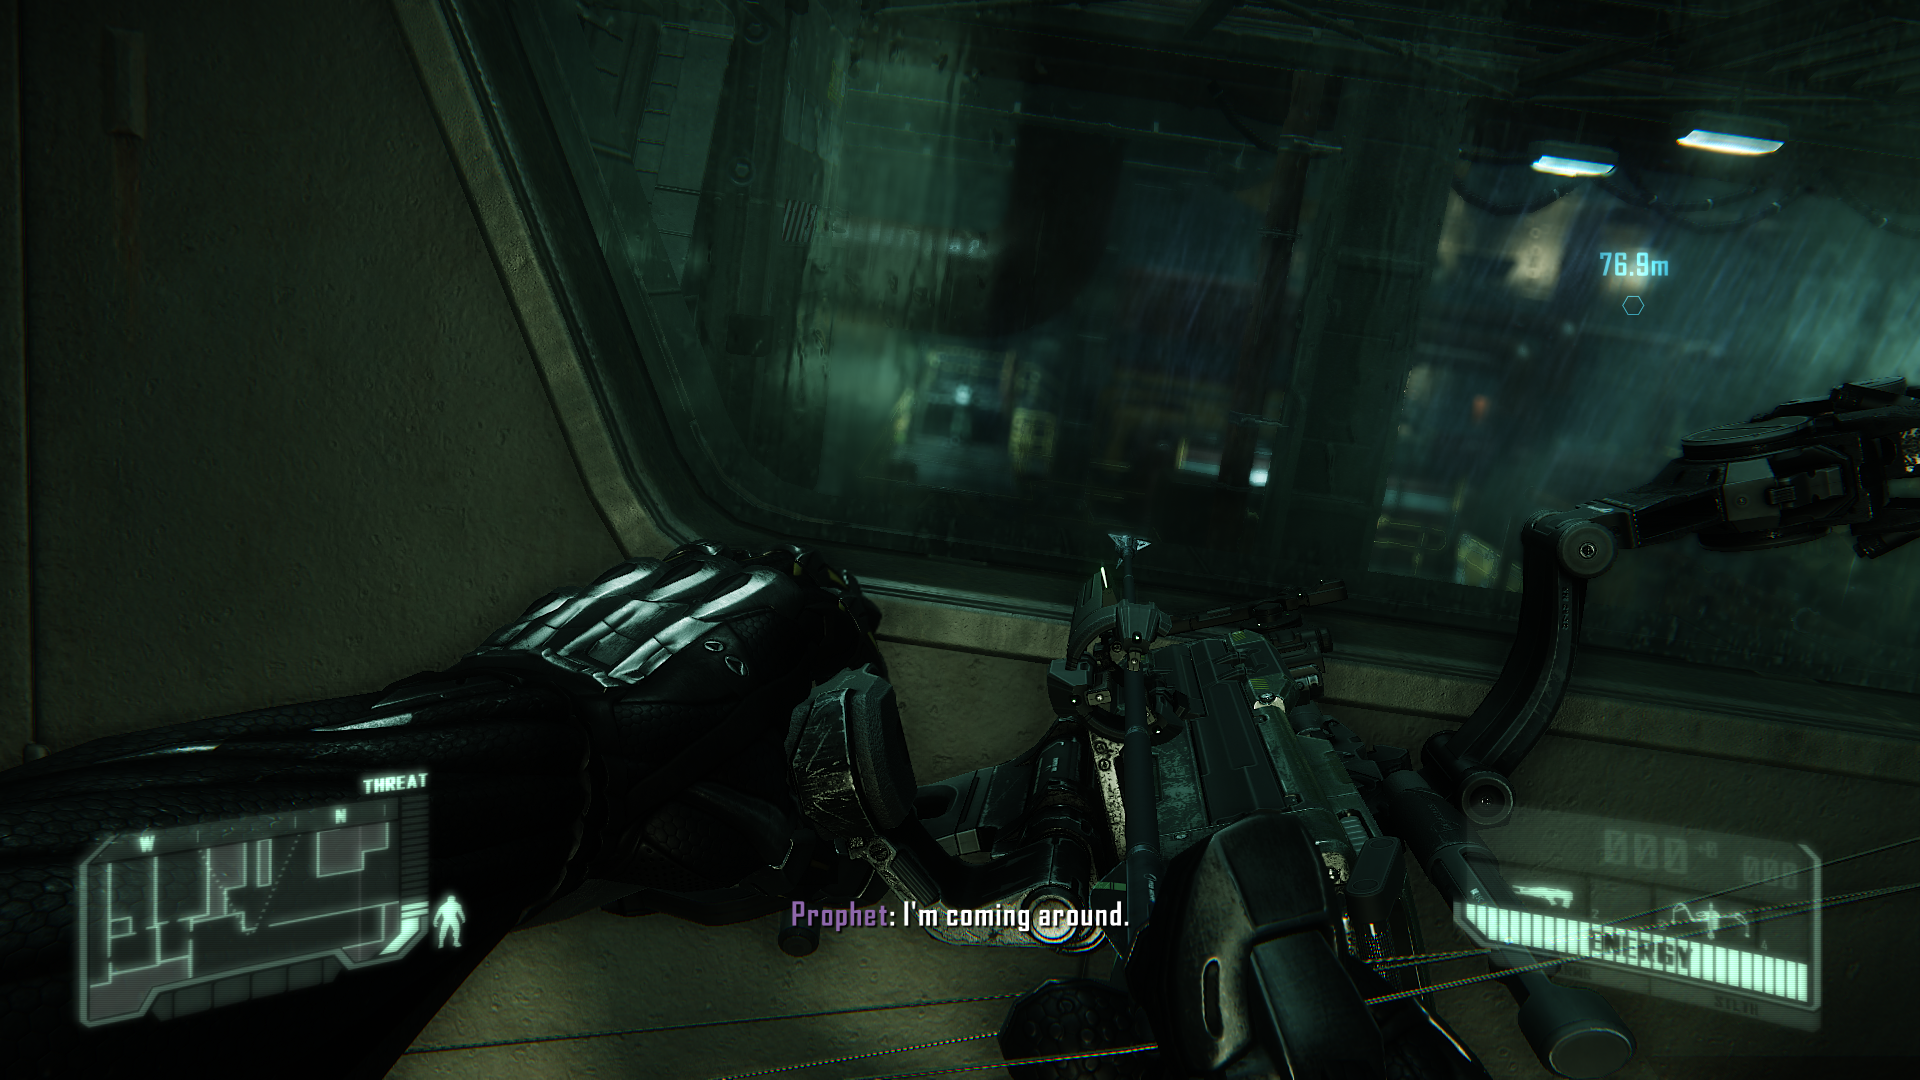 crysis320130920191143710fed5.png